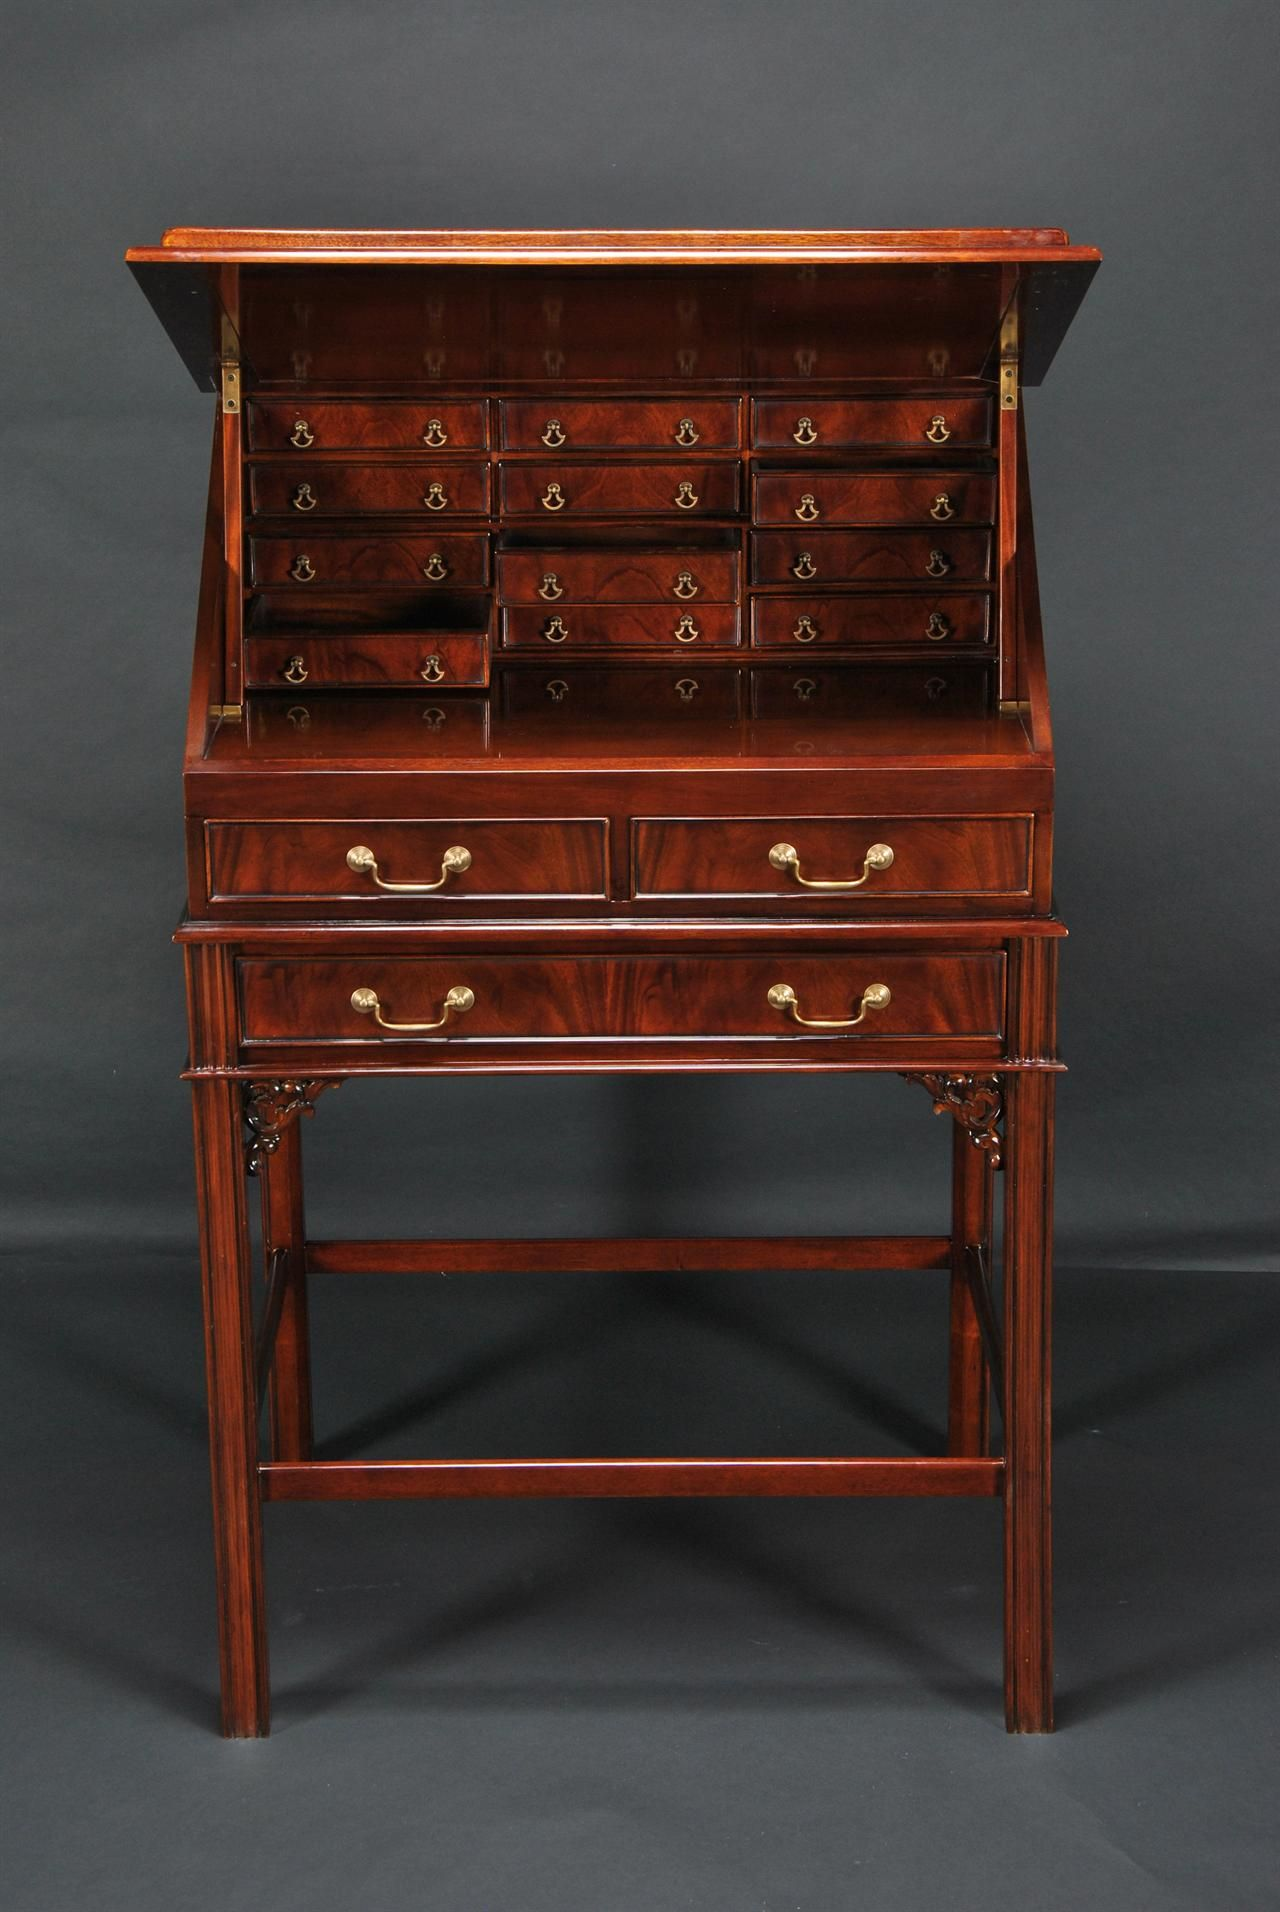 antique+stand+up+desk | Mahogany and Leather Stand Up Desk. Upright Desk  with drawers - Leather Top Stand Up Desk With Interior Drawers Standing Desks